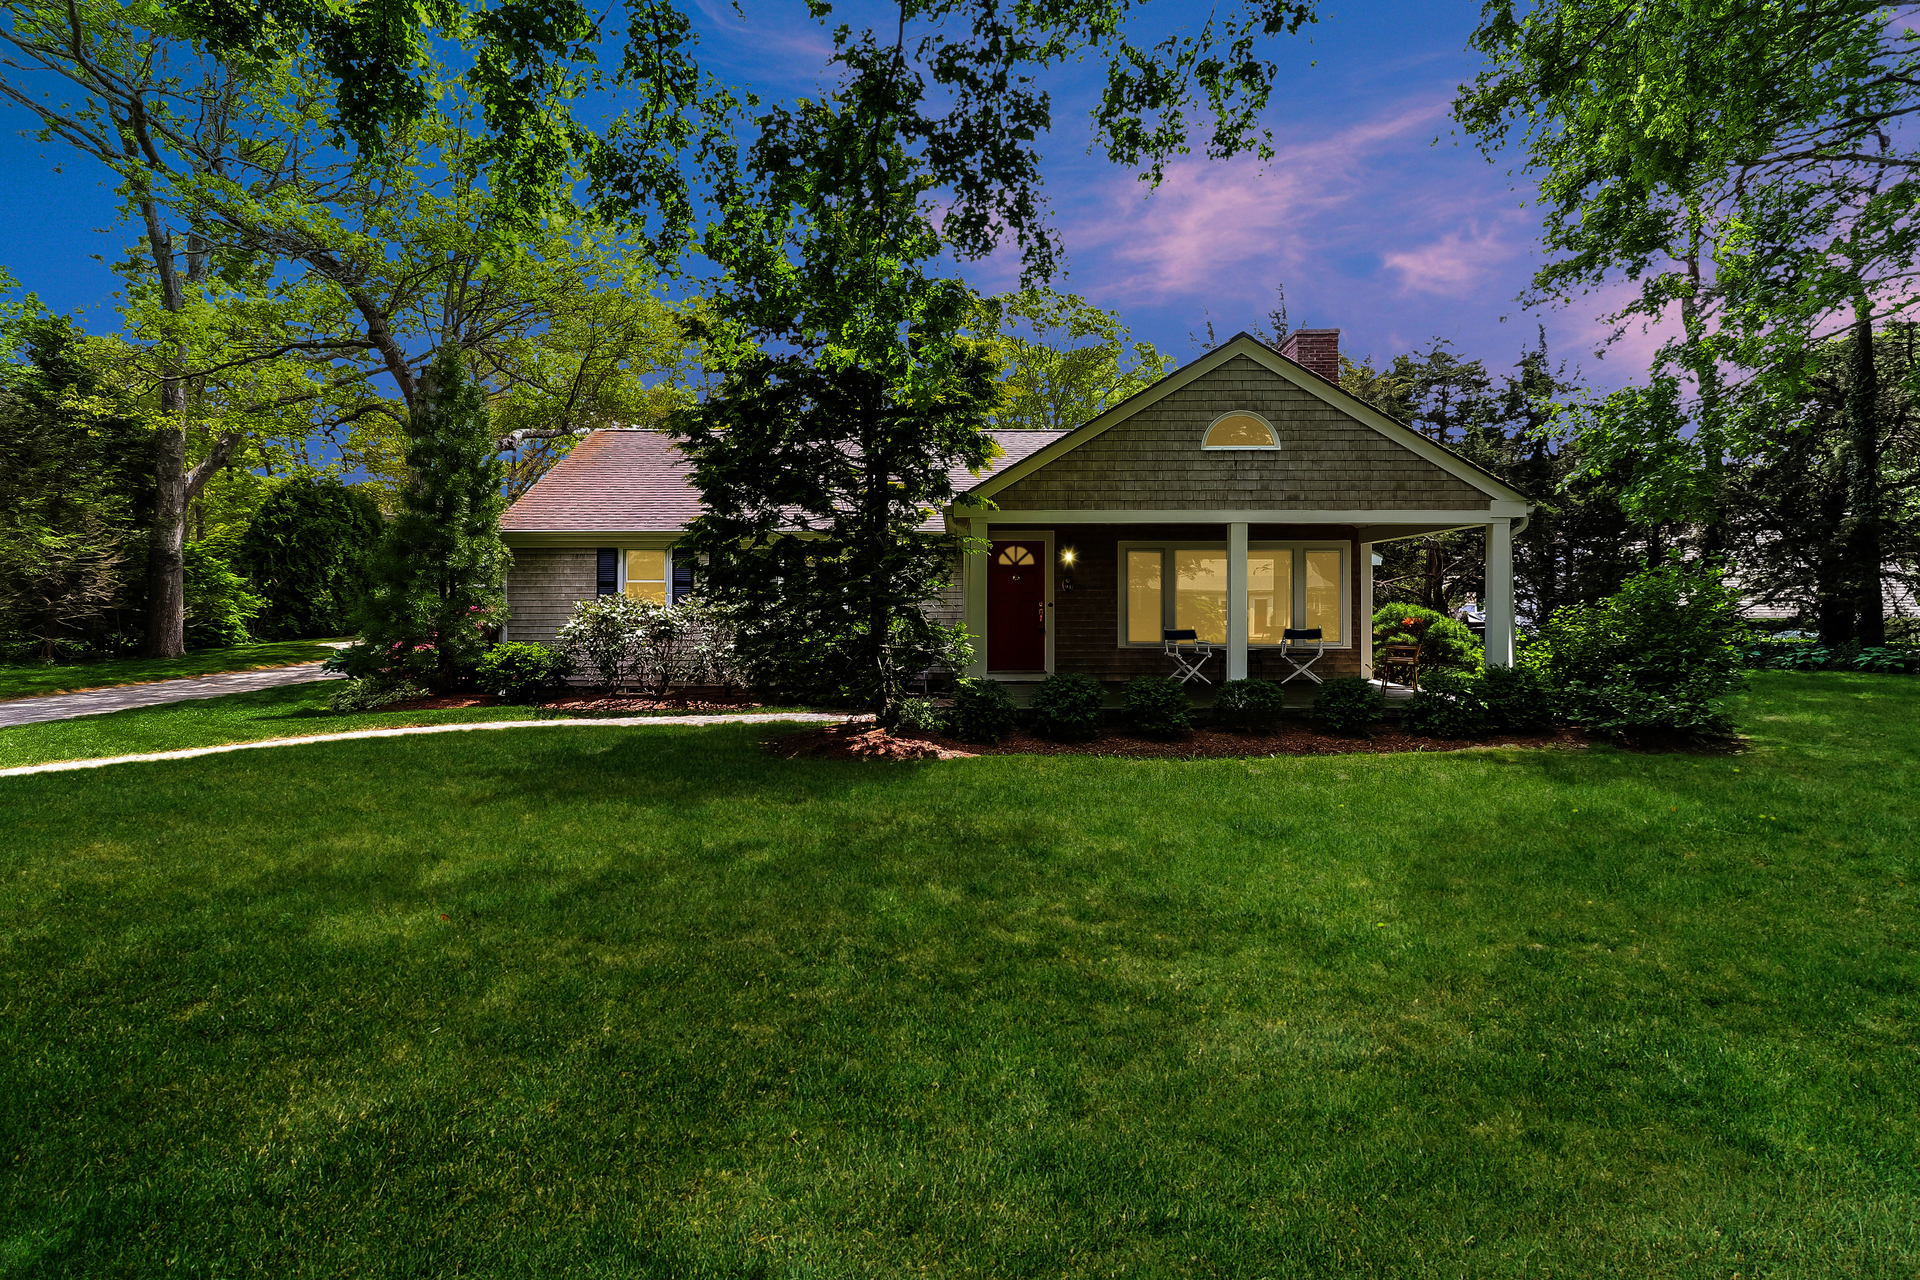 94 Pond View Drive, Centerville, MA 02632   Listed By Griffin Realty Group   MLS 22102852